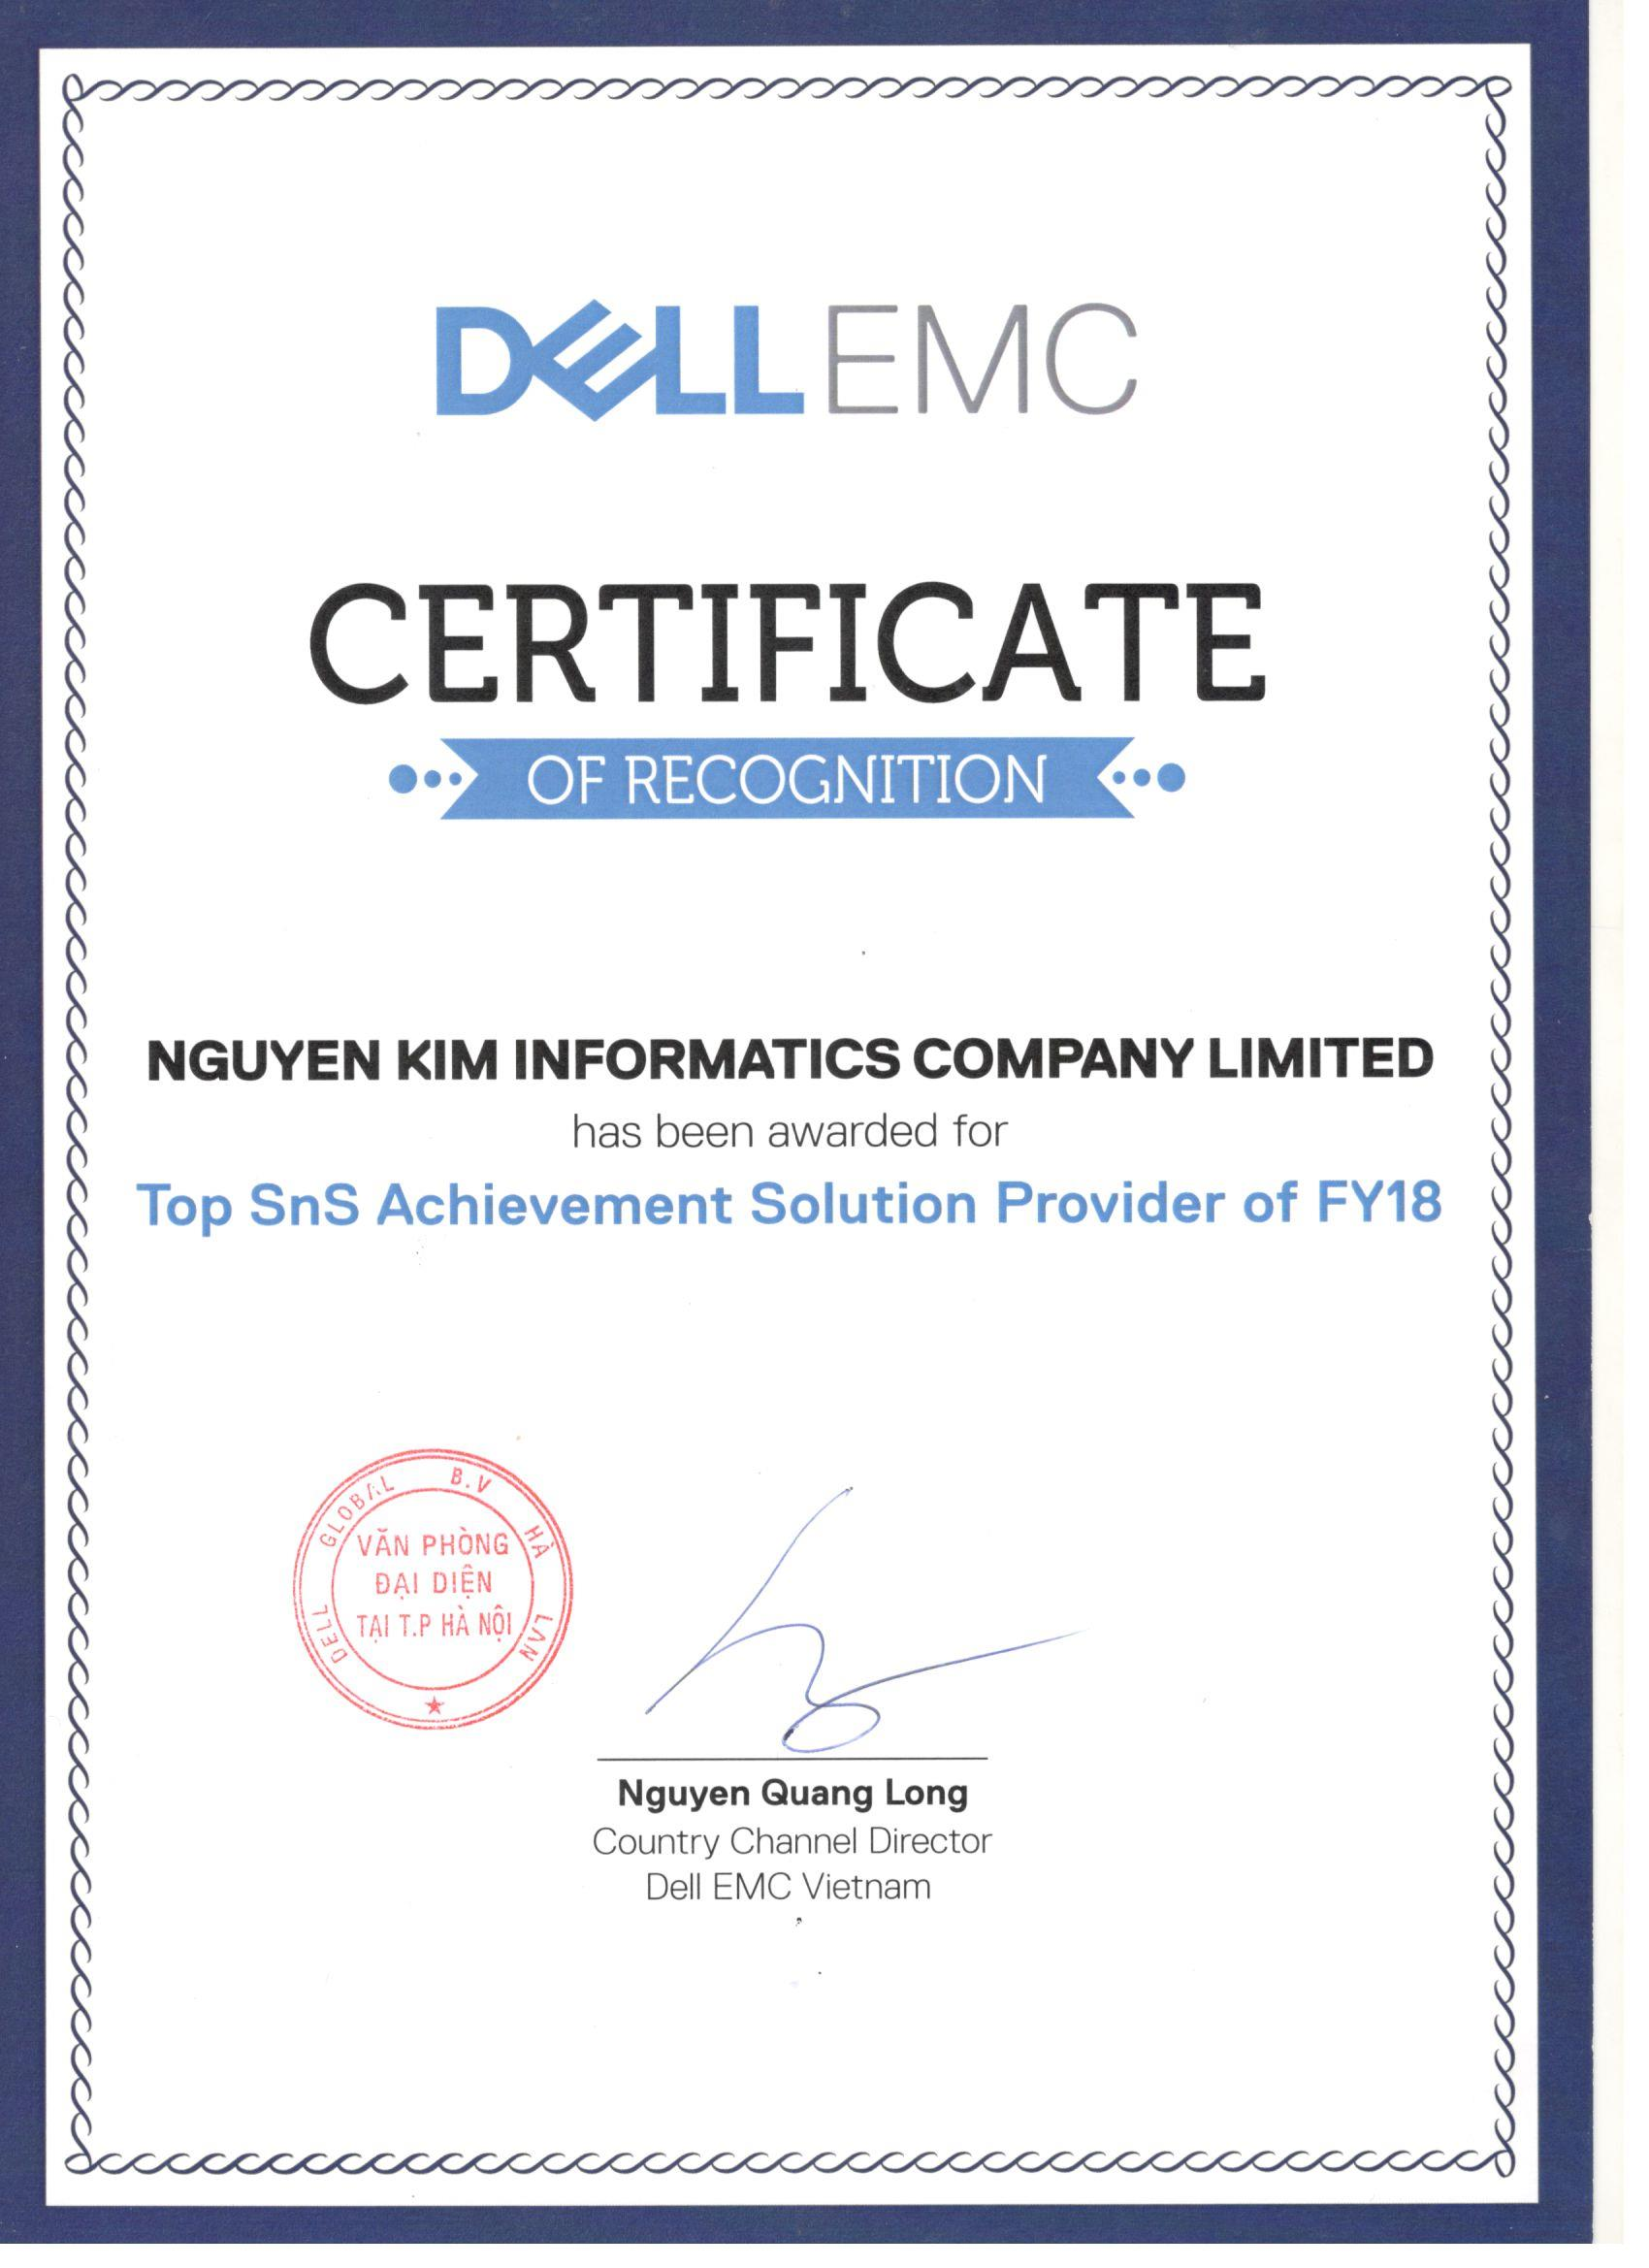 Chứng nhận DELLEMC Certificate Of Recognition 2018